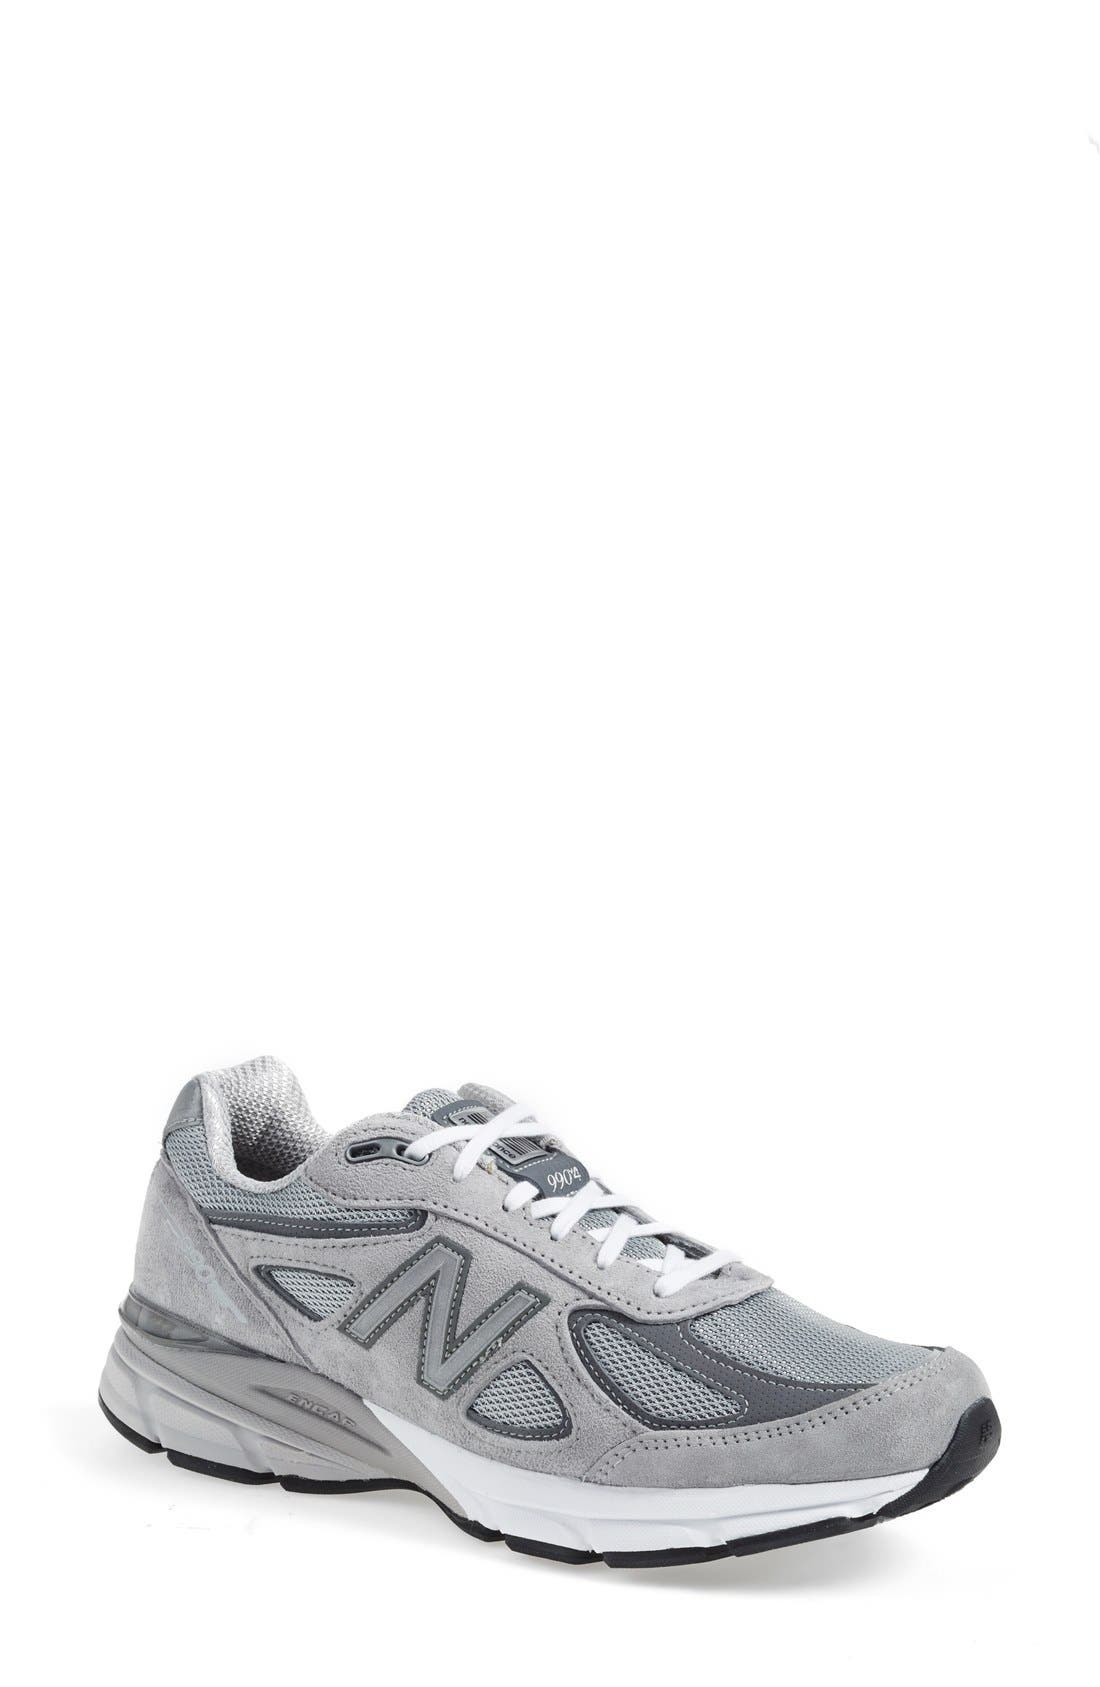 new balance shoes running men s pouch rompers baby online